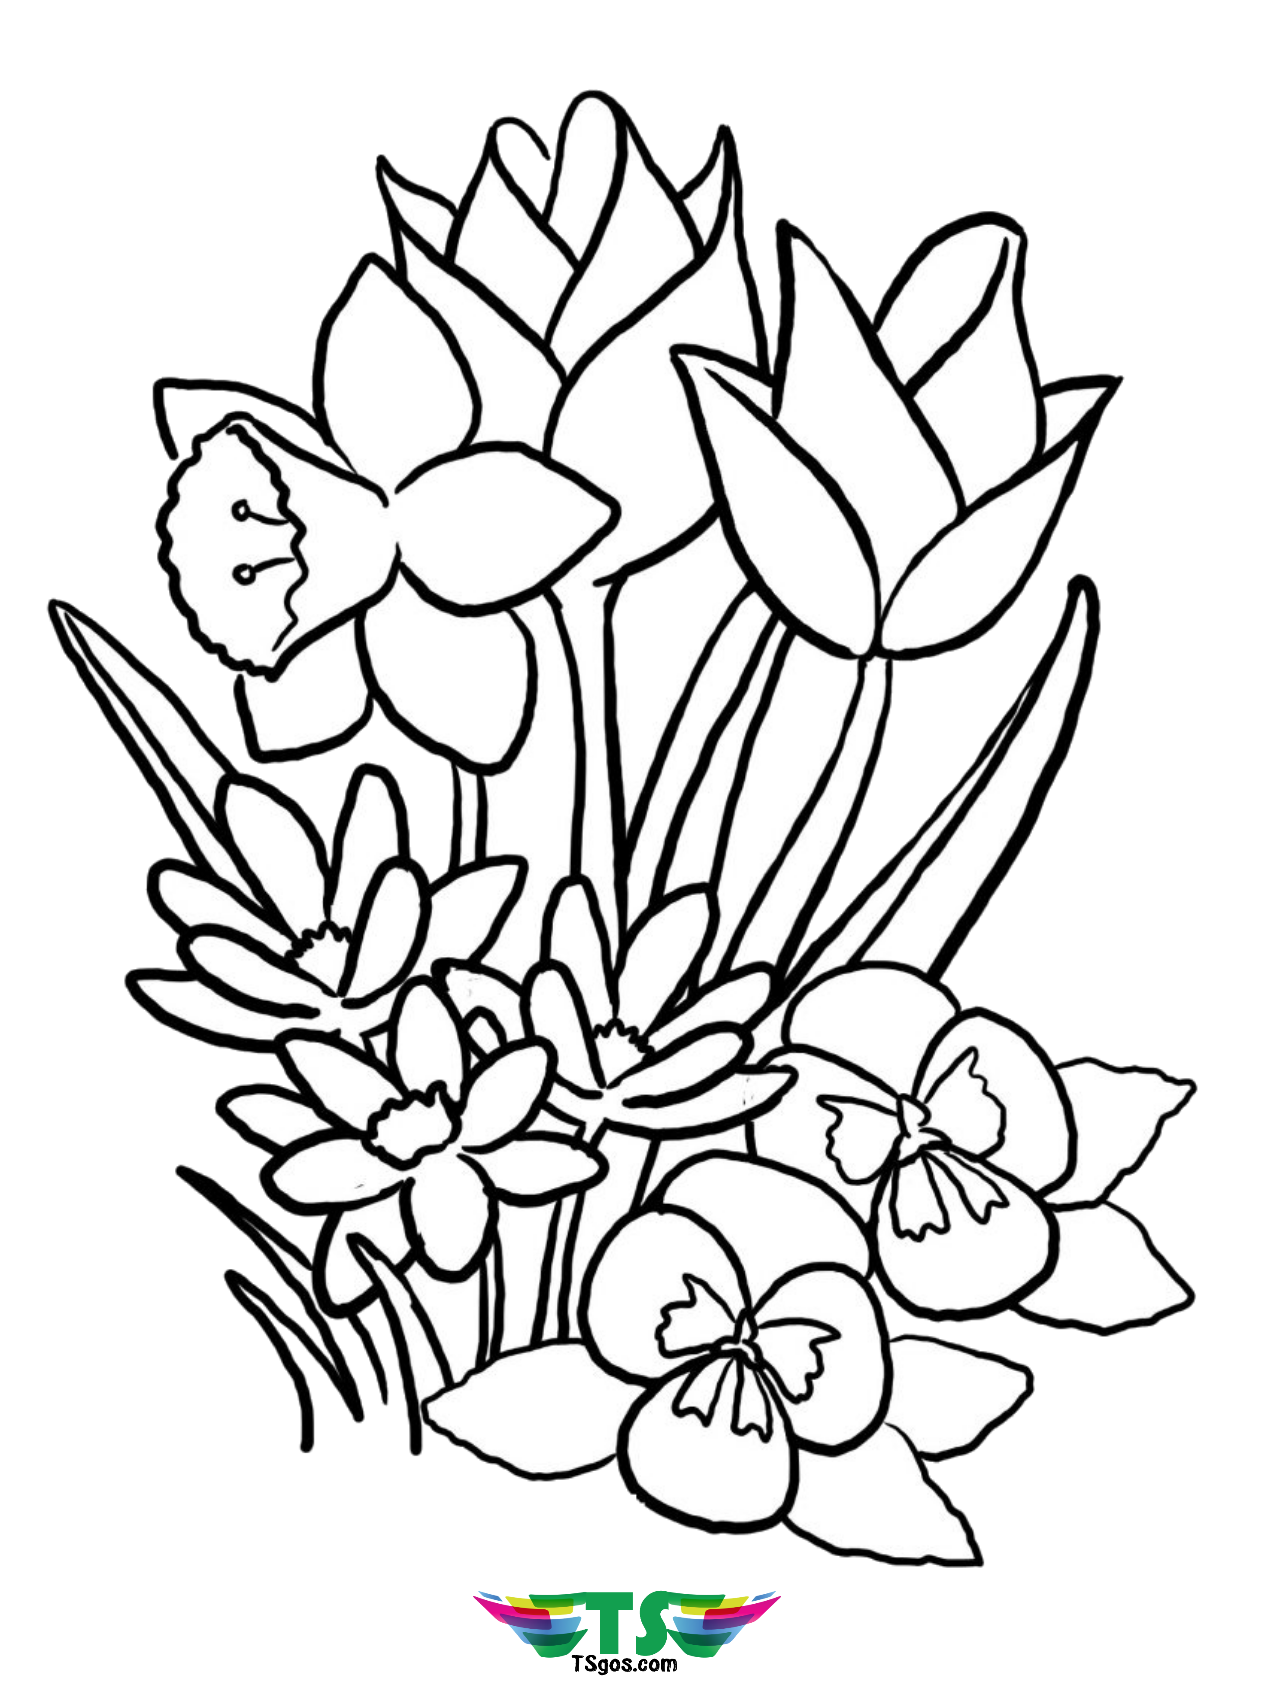 coloring flower cartoon images cartoon flower character coloring page free printable coloring cartoon flower images